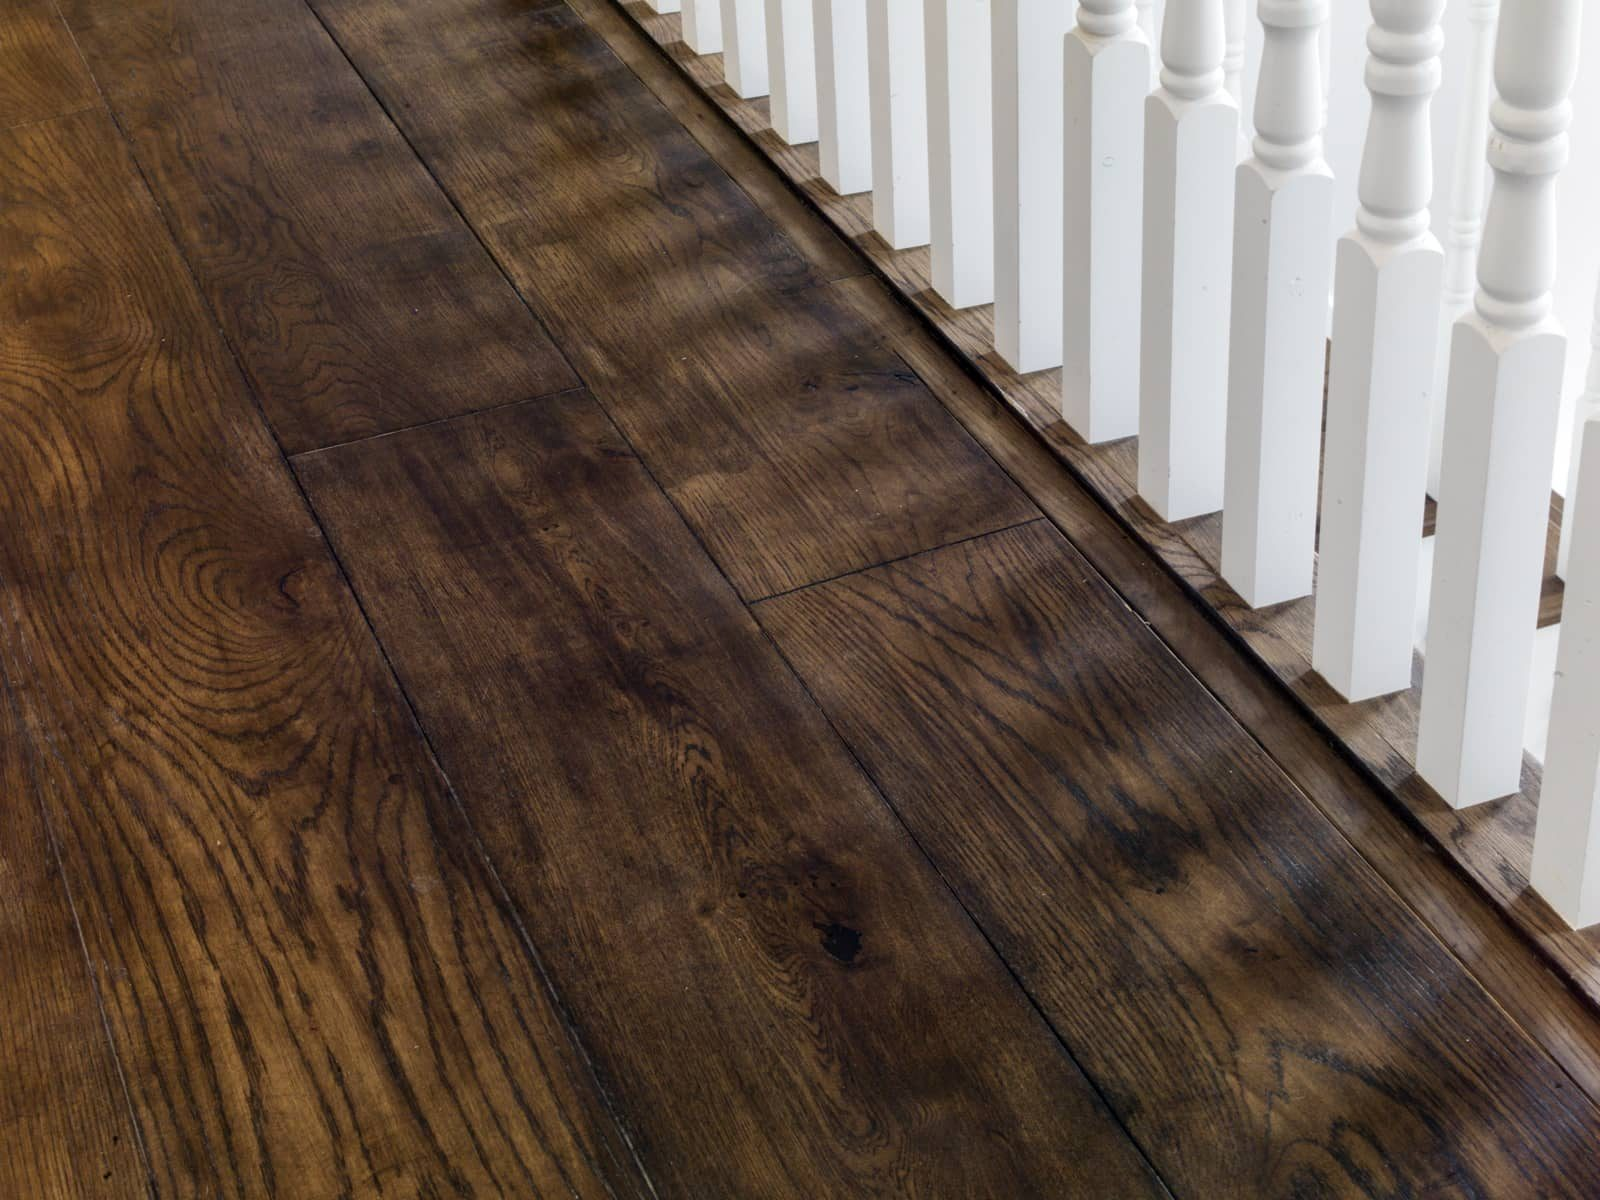 Oak plank timber flooring